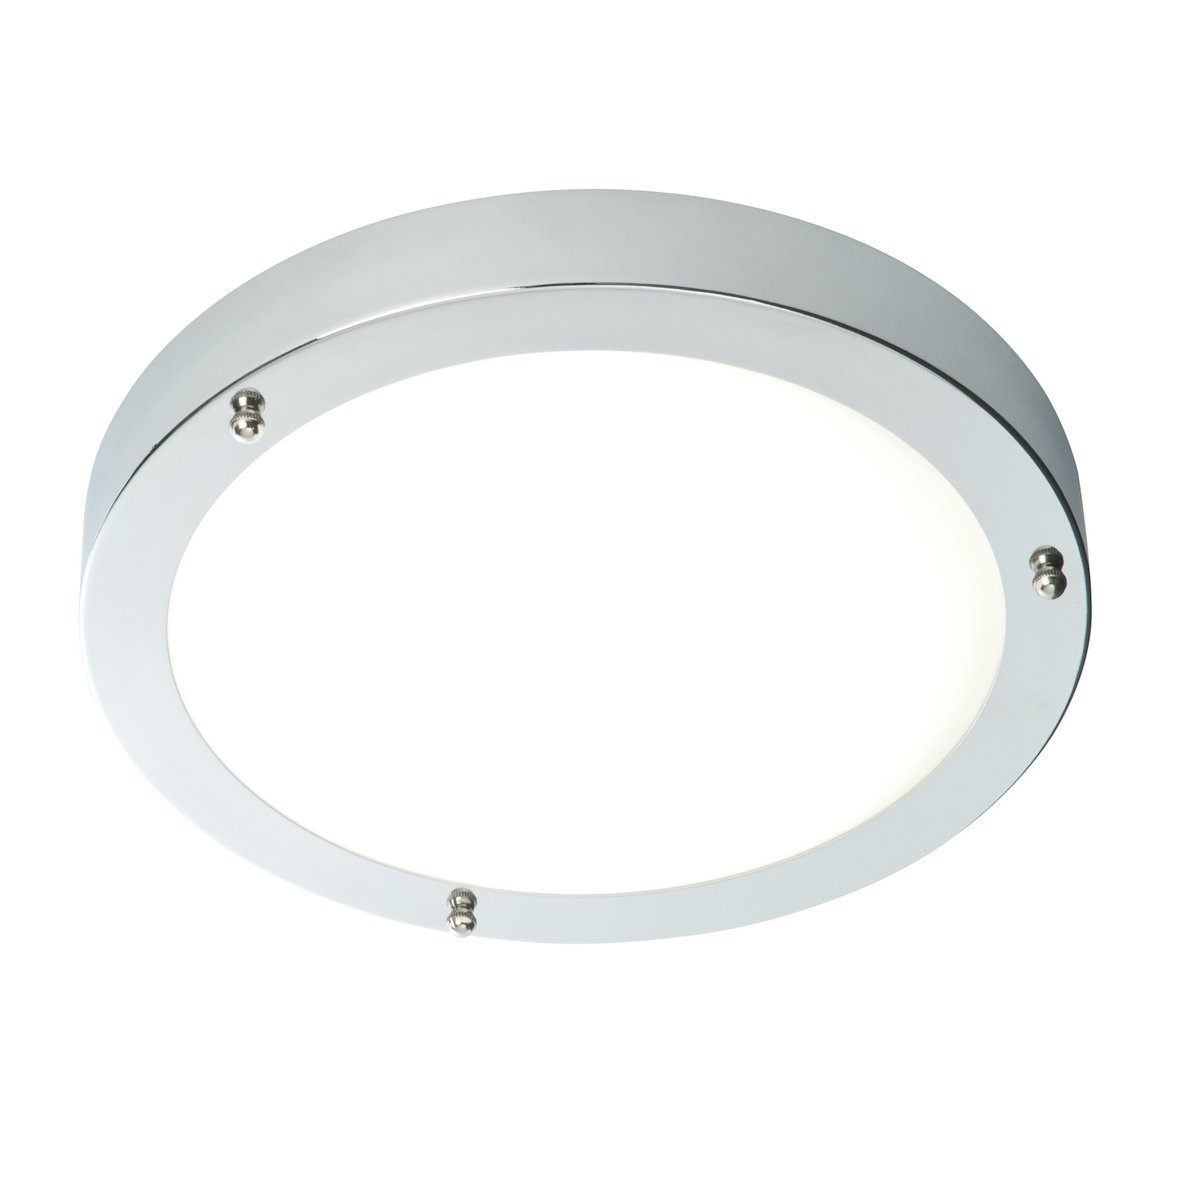 Modern IP44 Rated Flush Round Chrome Plated 300mm Disc LED Bathroom Ceiling Light Fitting with Frosted Glass Shade Zone 2